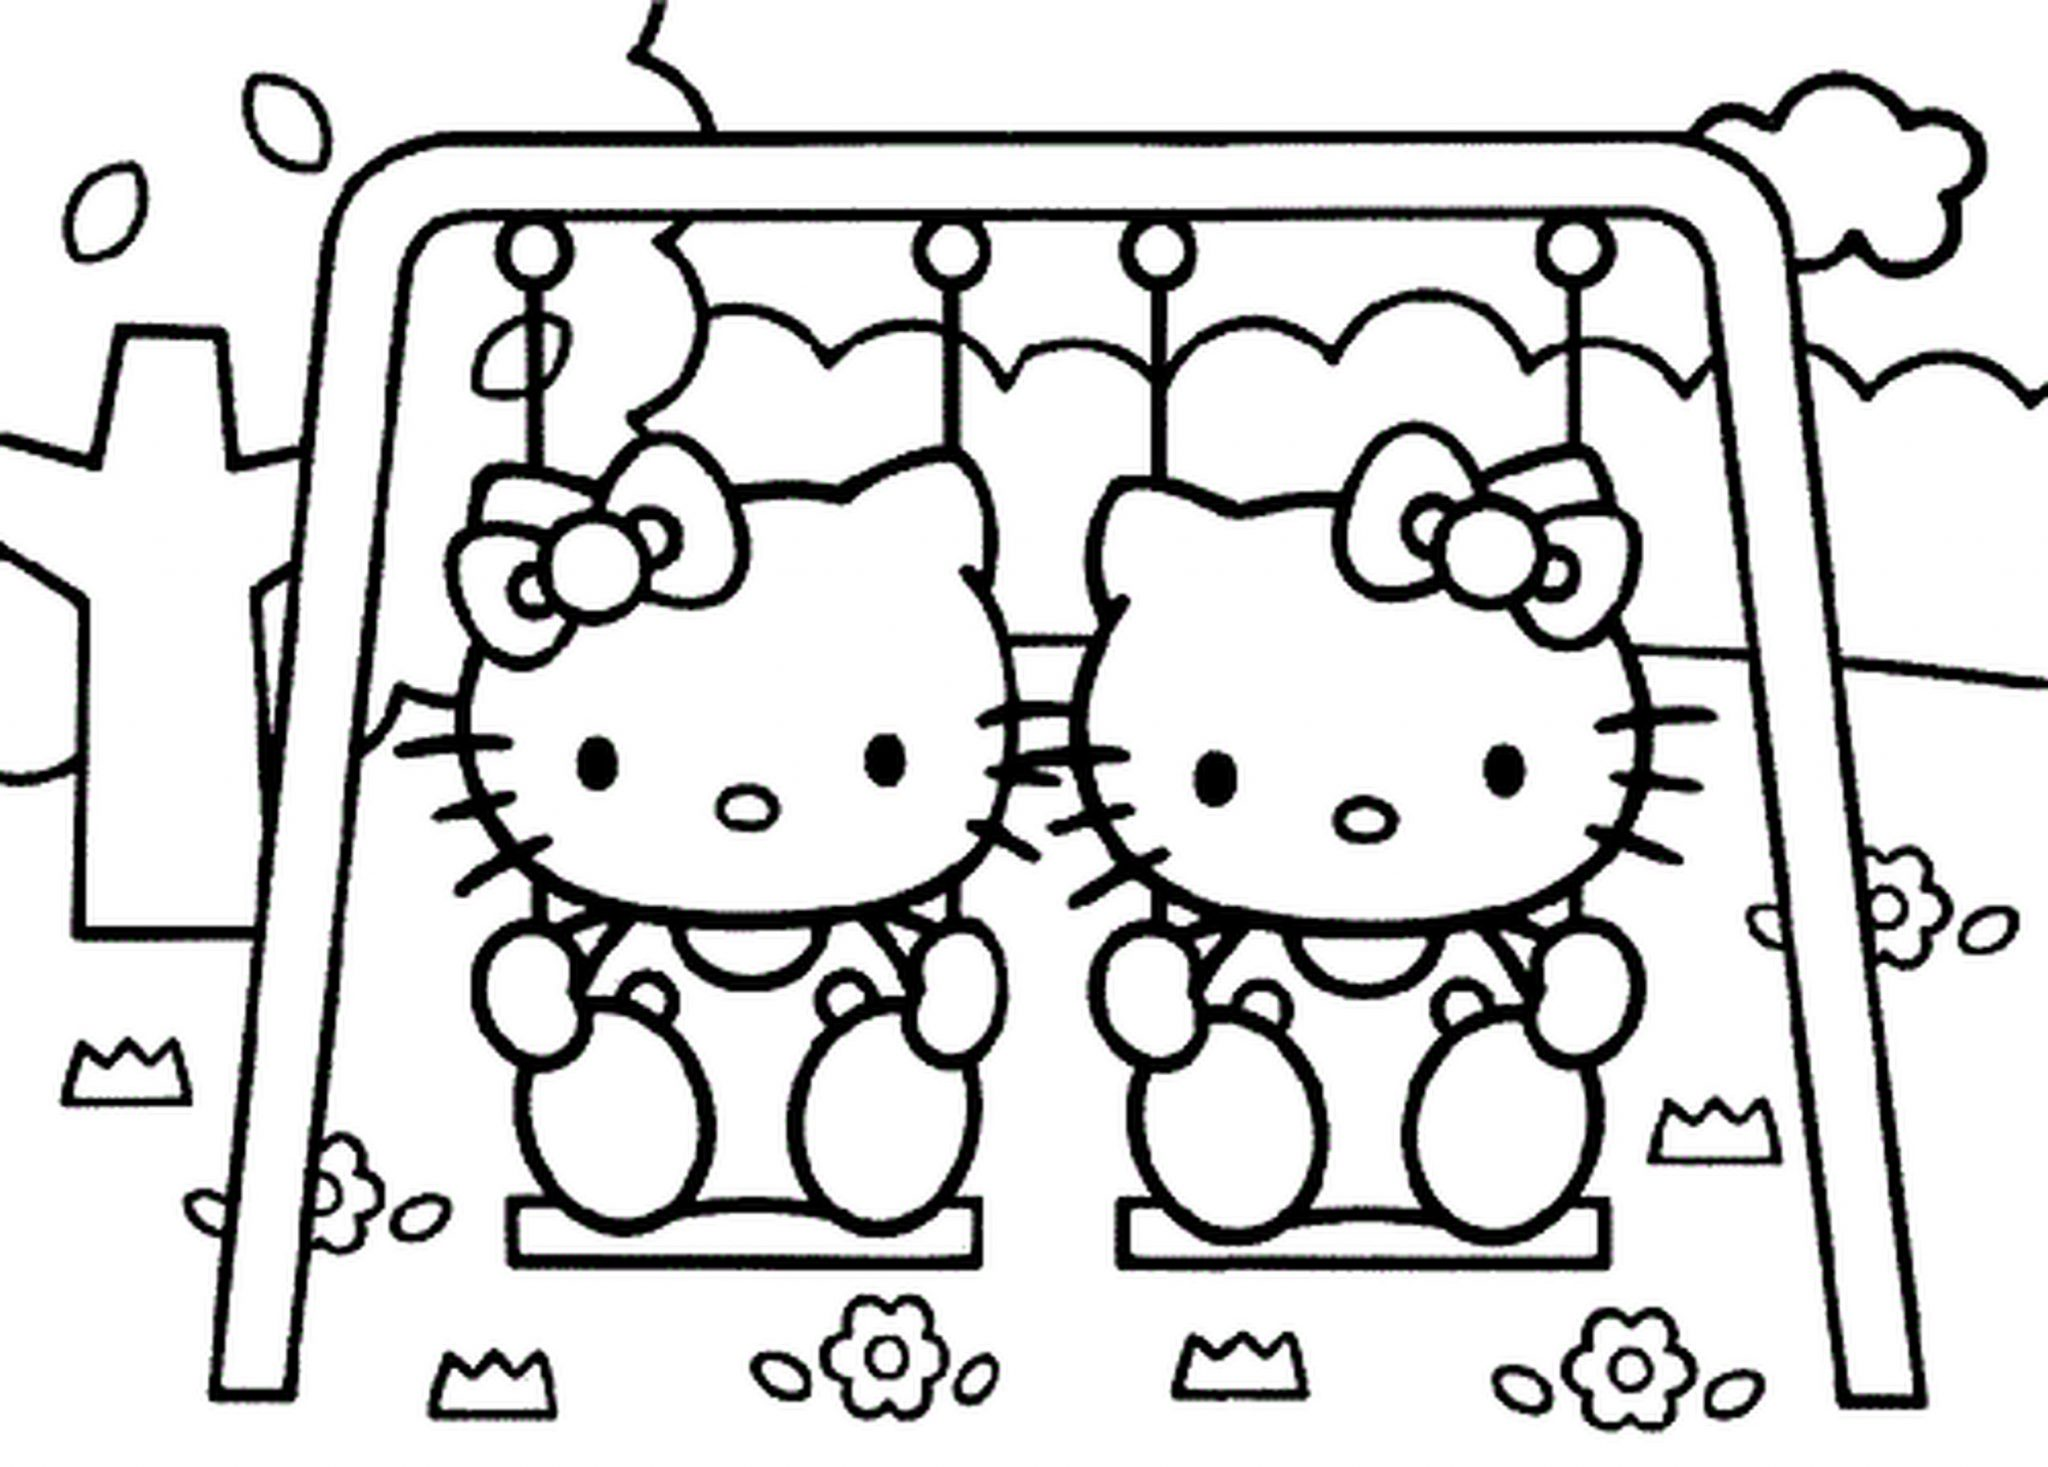 Coloring pages for little girls hello kitty